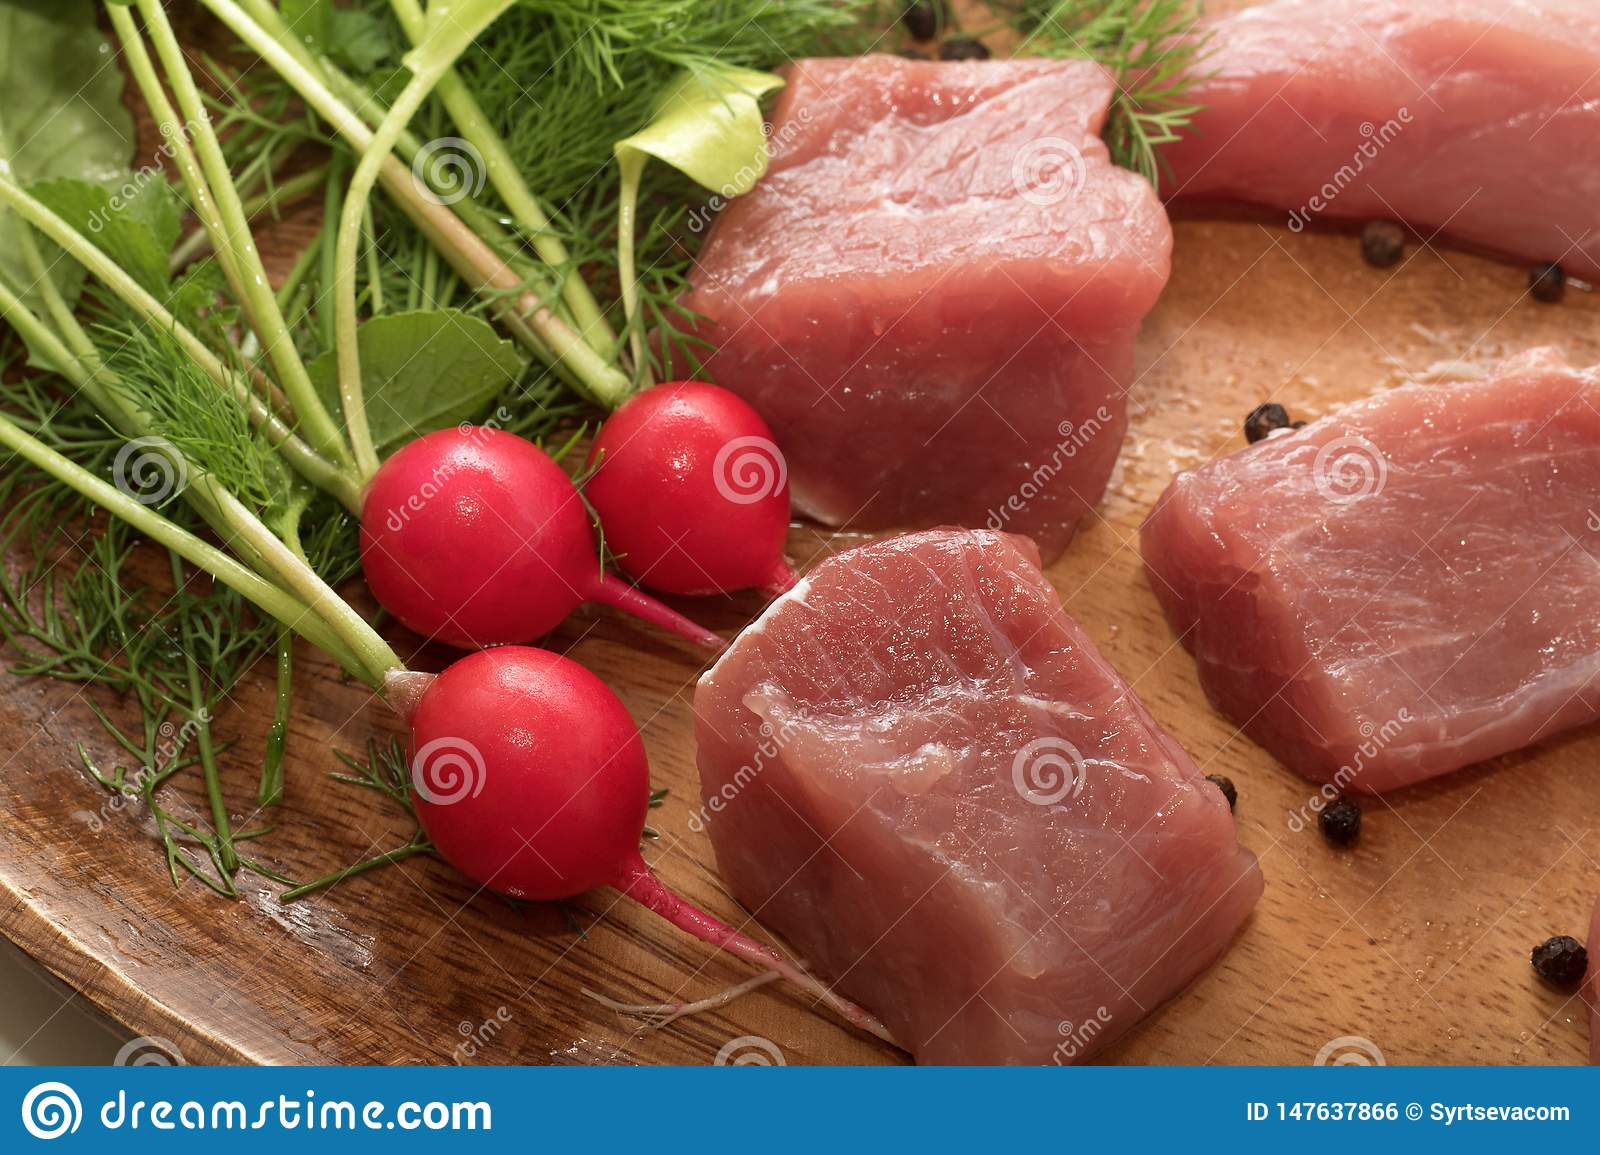 Juicy piece of meat served on a wooden plate with seasoning, herbs and vegetables